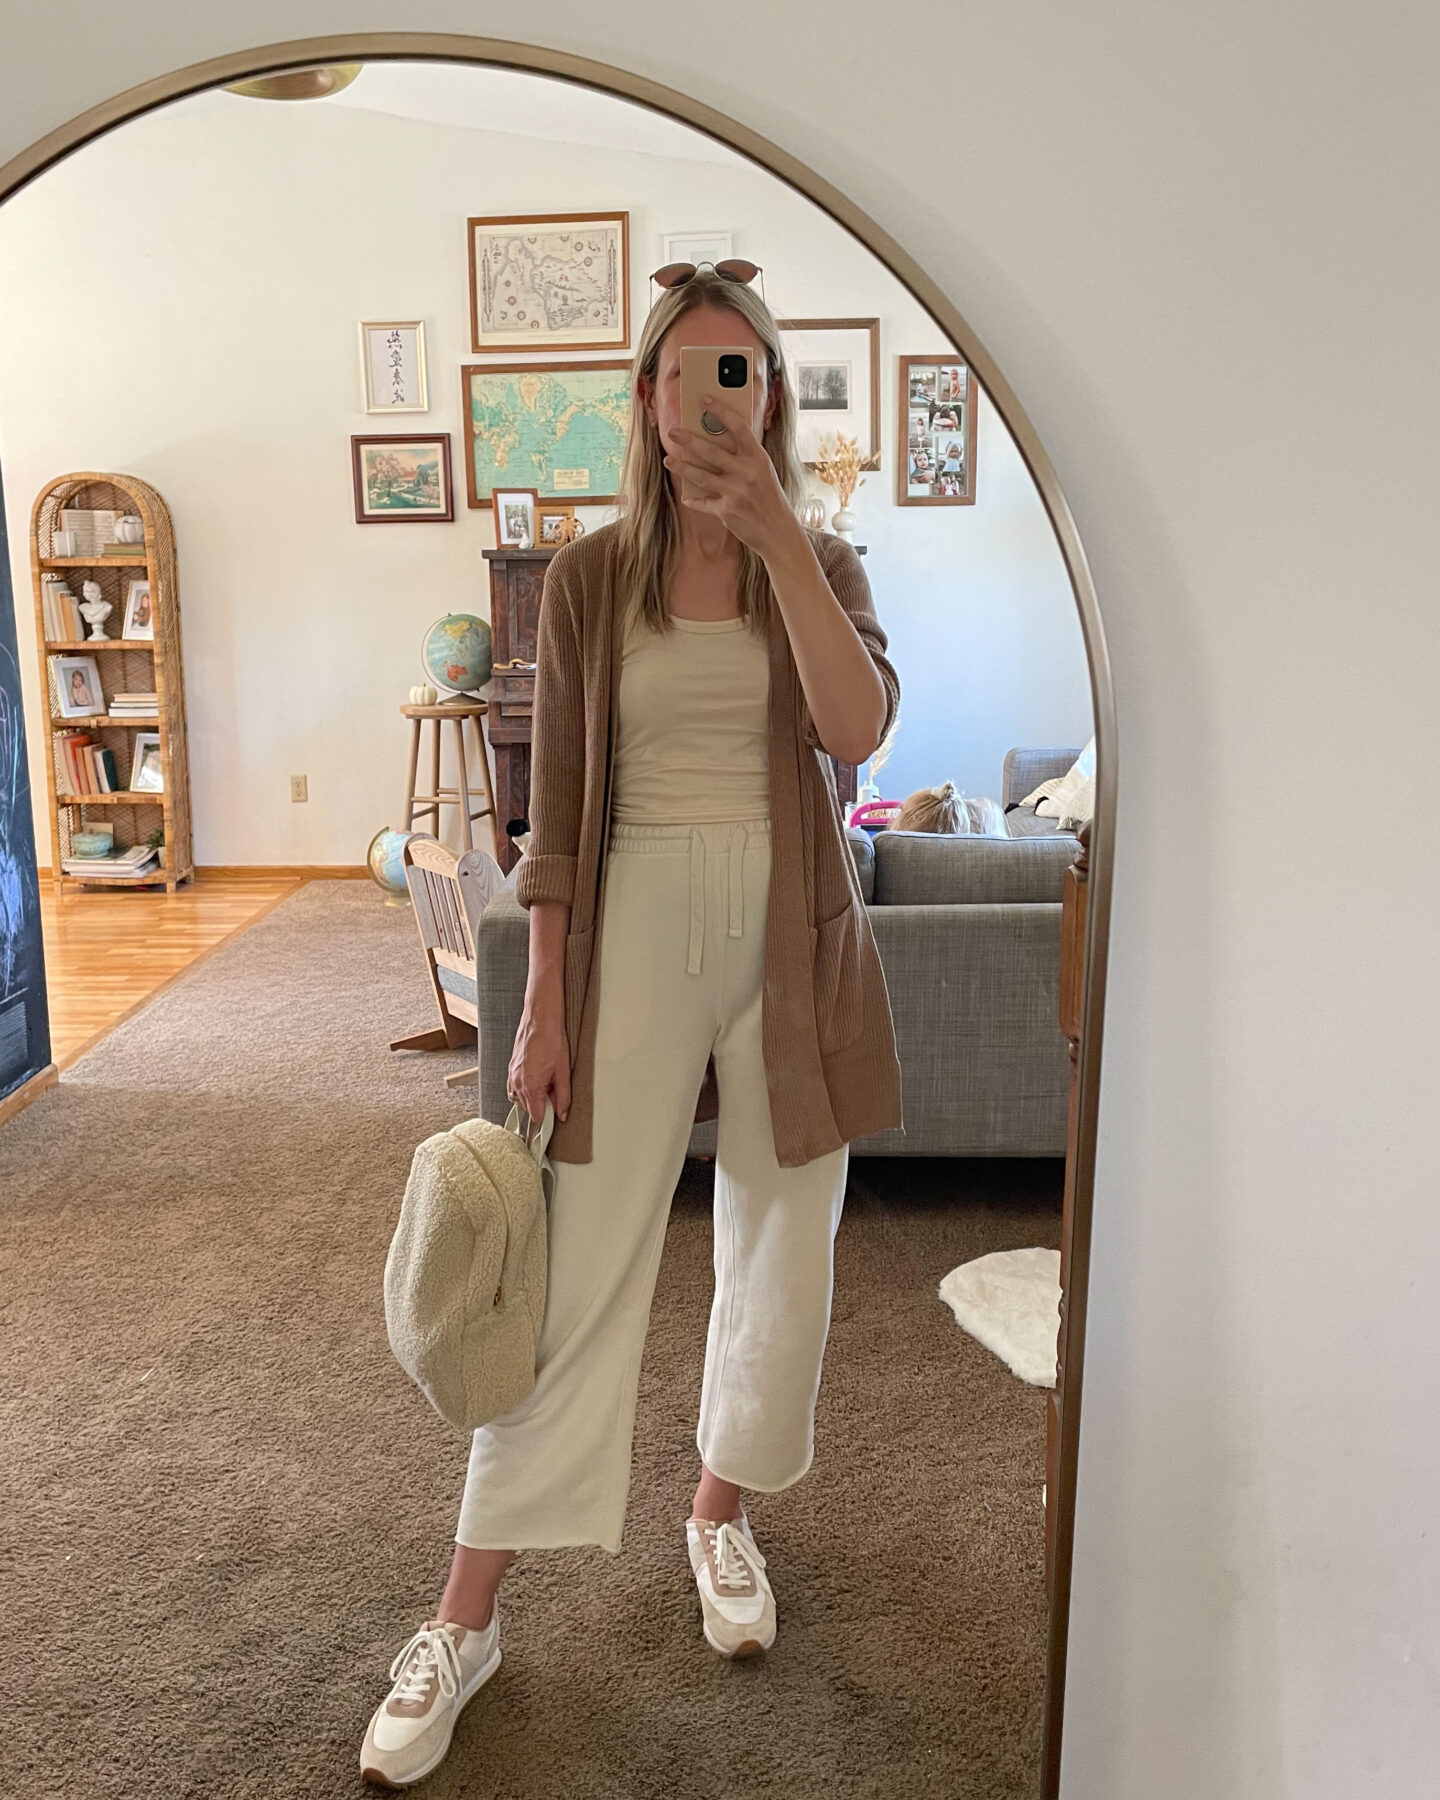 Karin Emily wears a cream loungewear set with a camel cardigan on top, a pair of sneakers and a sherpa bag